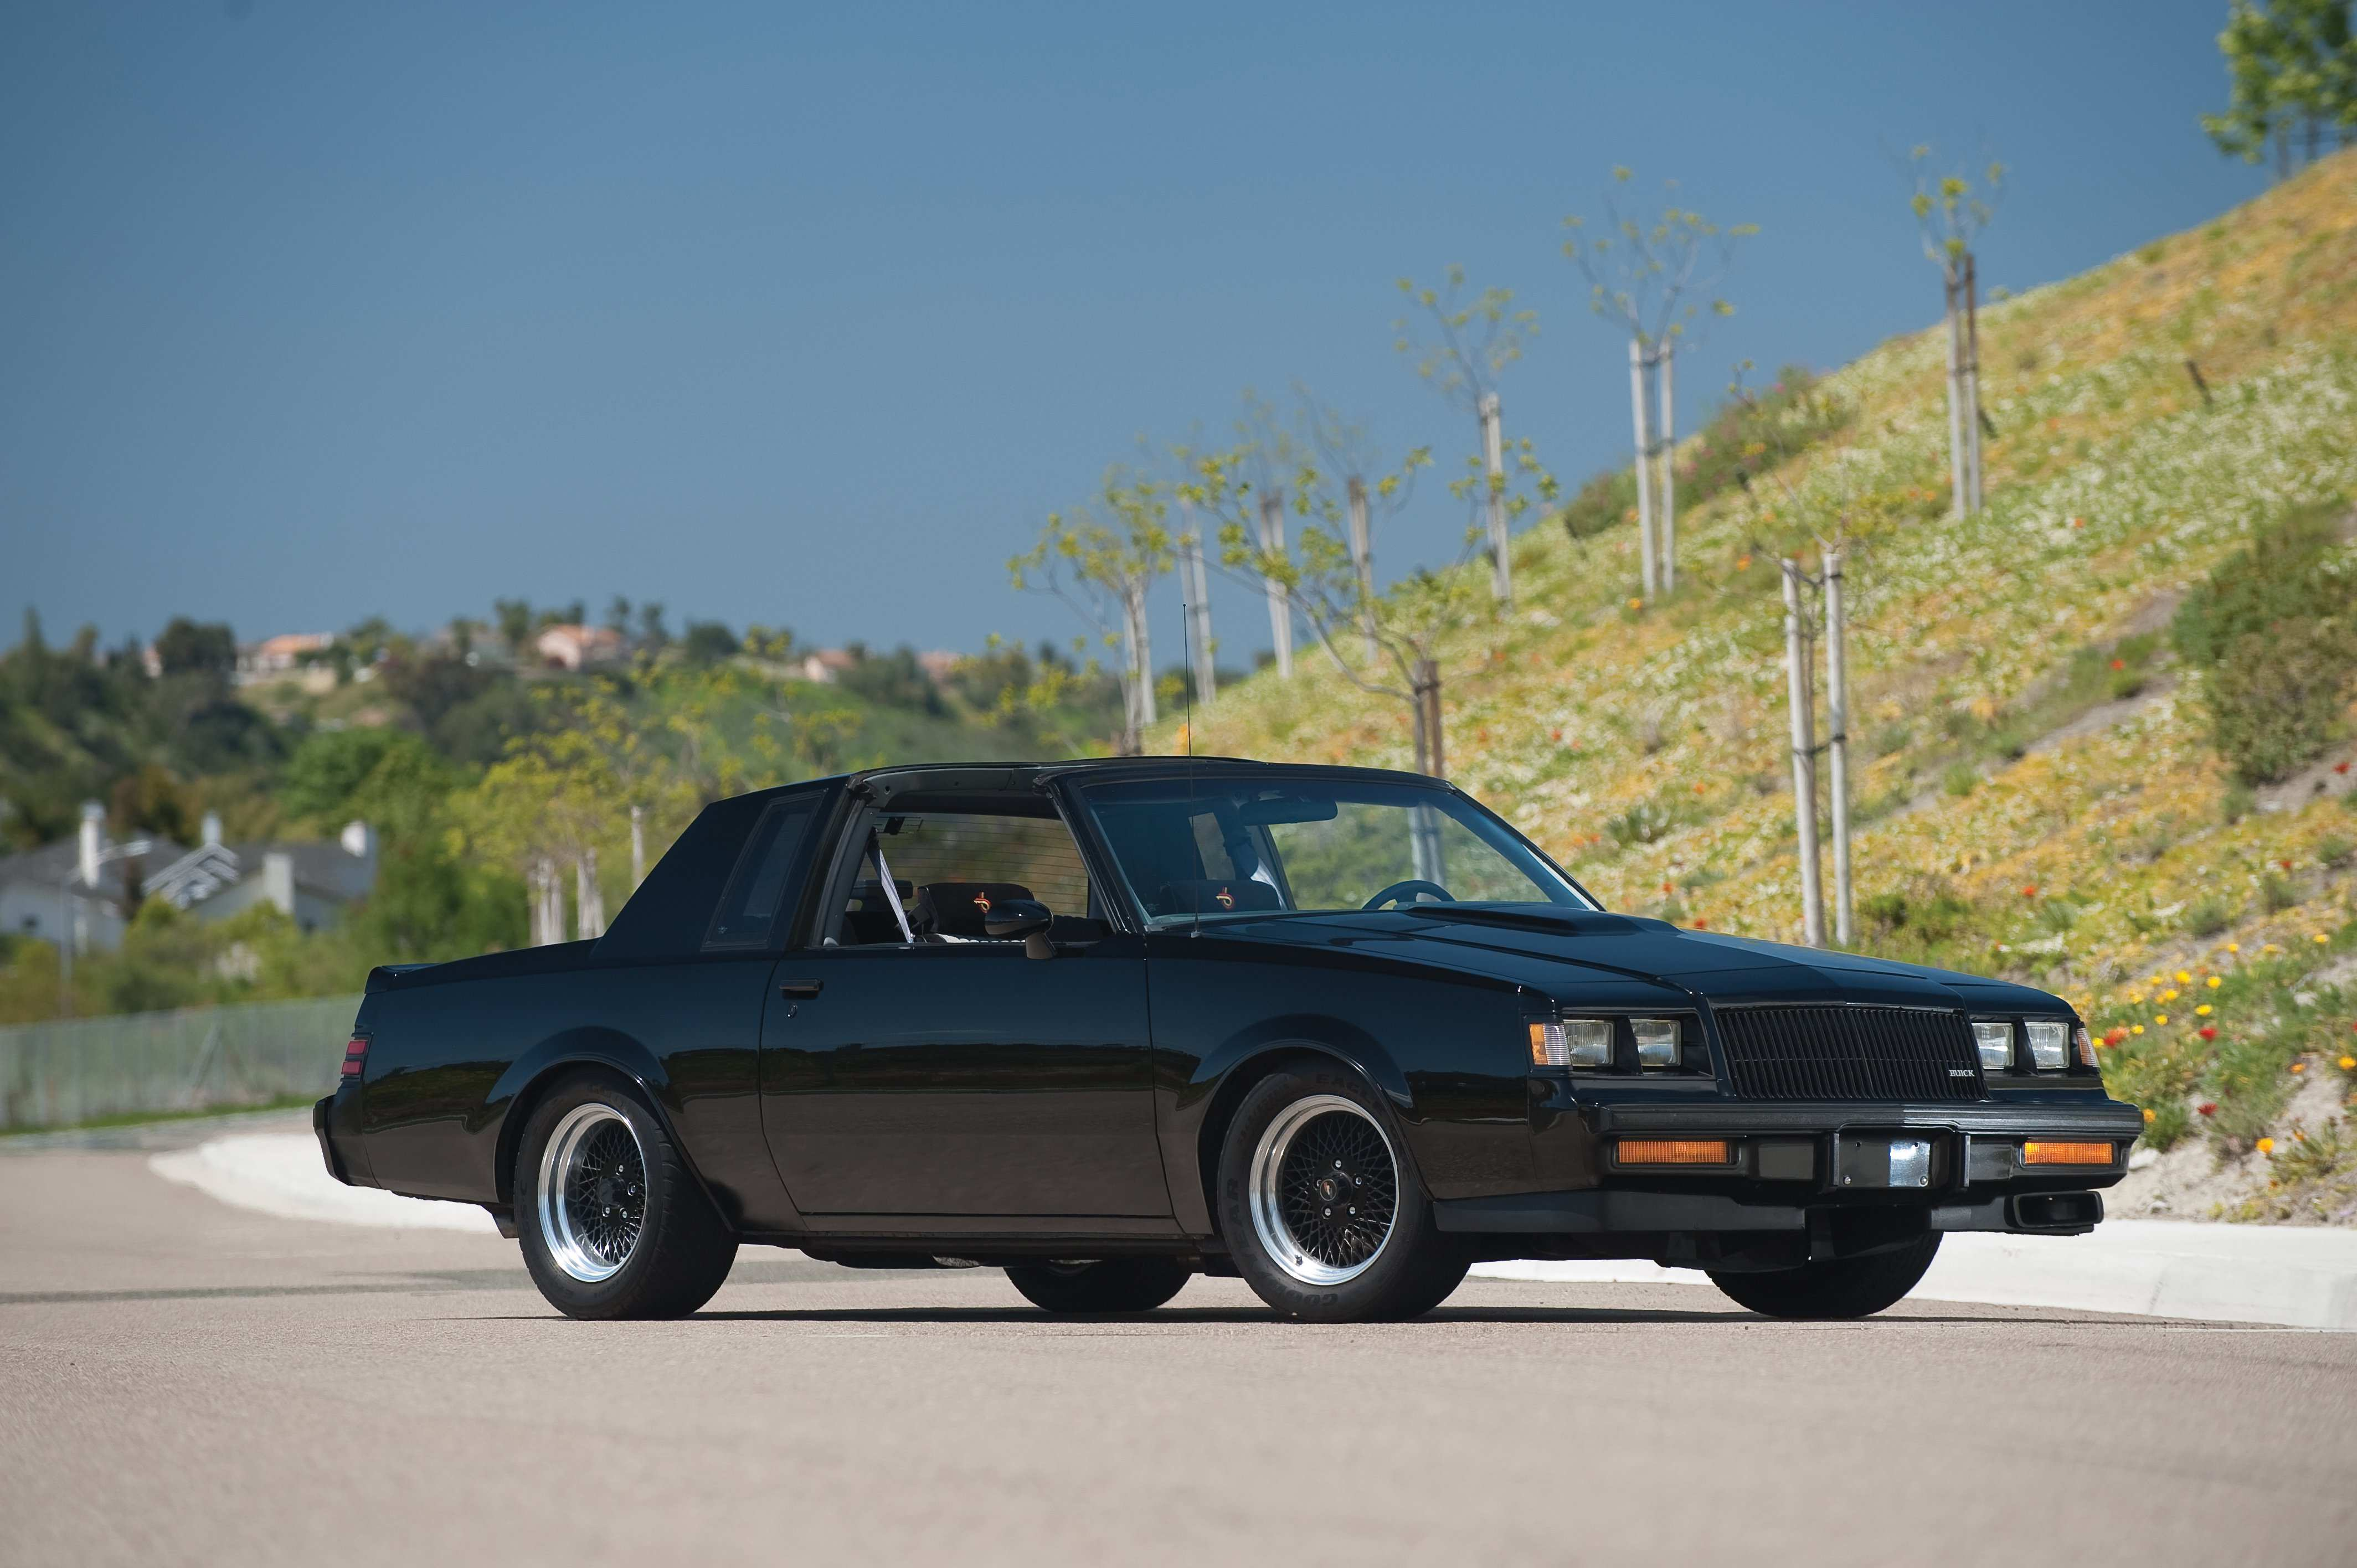 93 All New Grand National Gnx Specs Exterior with Grand National Gnx Specs